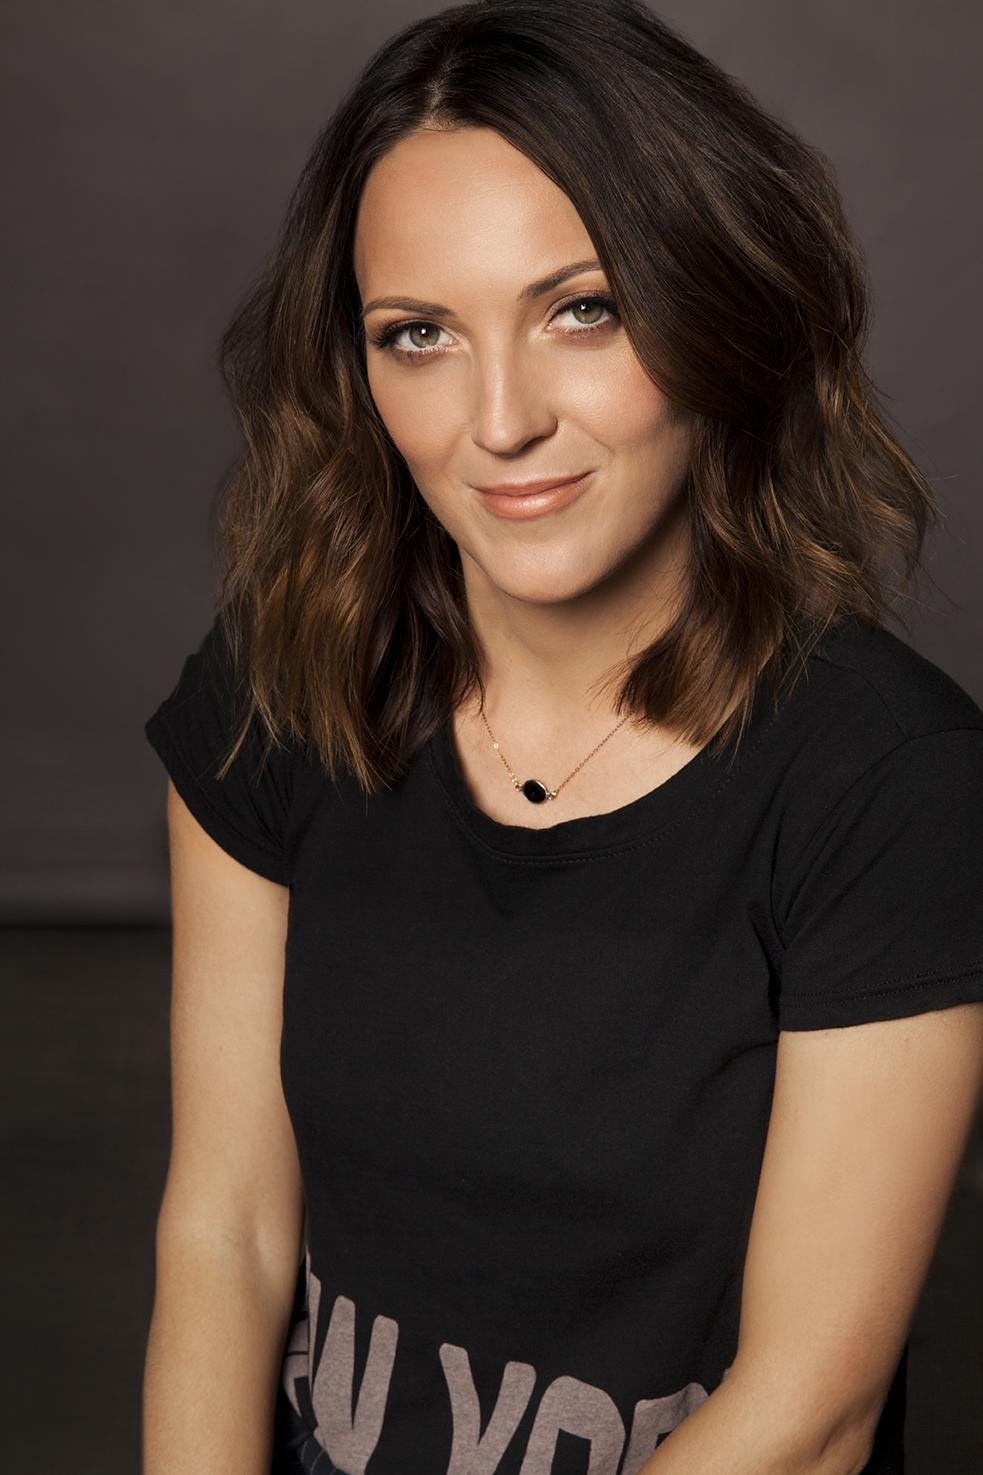 jen kirkman stand up youtubejen kirkman stand up, jen kirkman height, jen kirkman stand up youtube, jen kirkman special, jen kirkman cat wedding, jen kirkman watch online, jen kirkman comedian, jen kirkman email